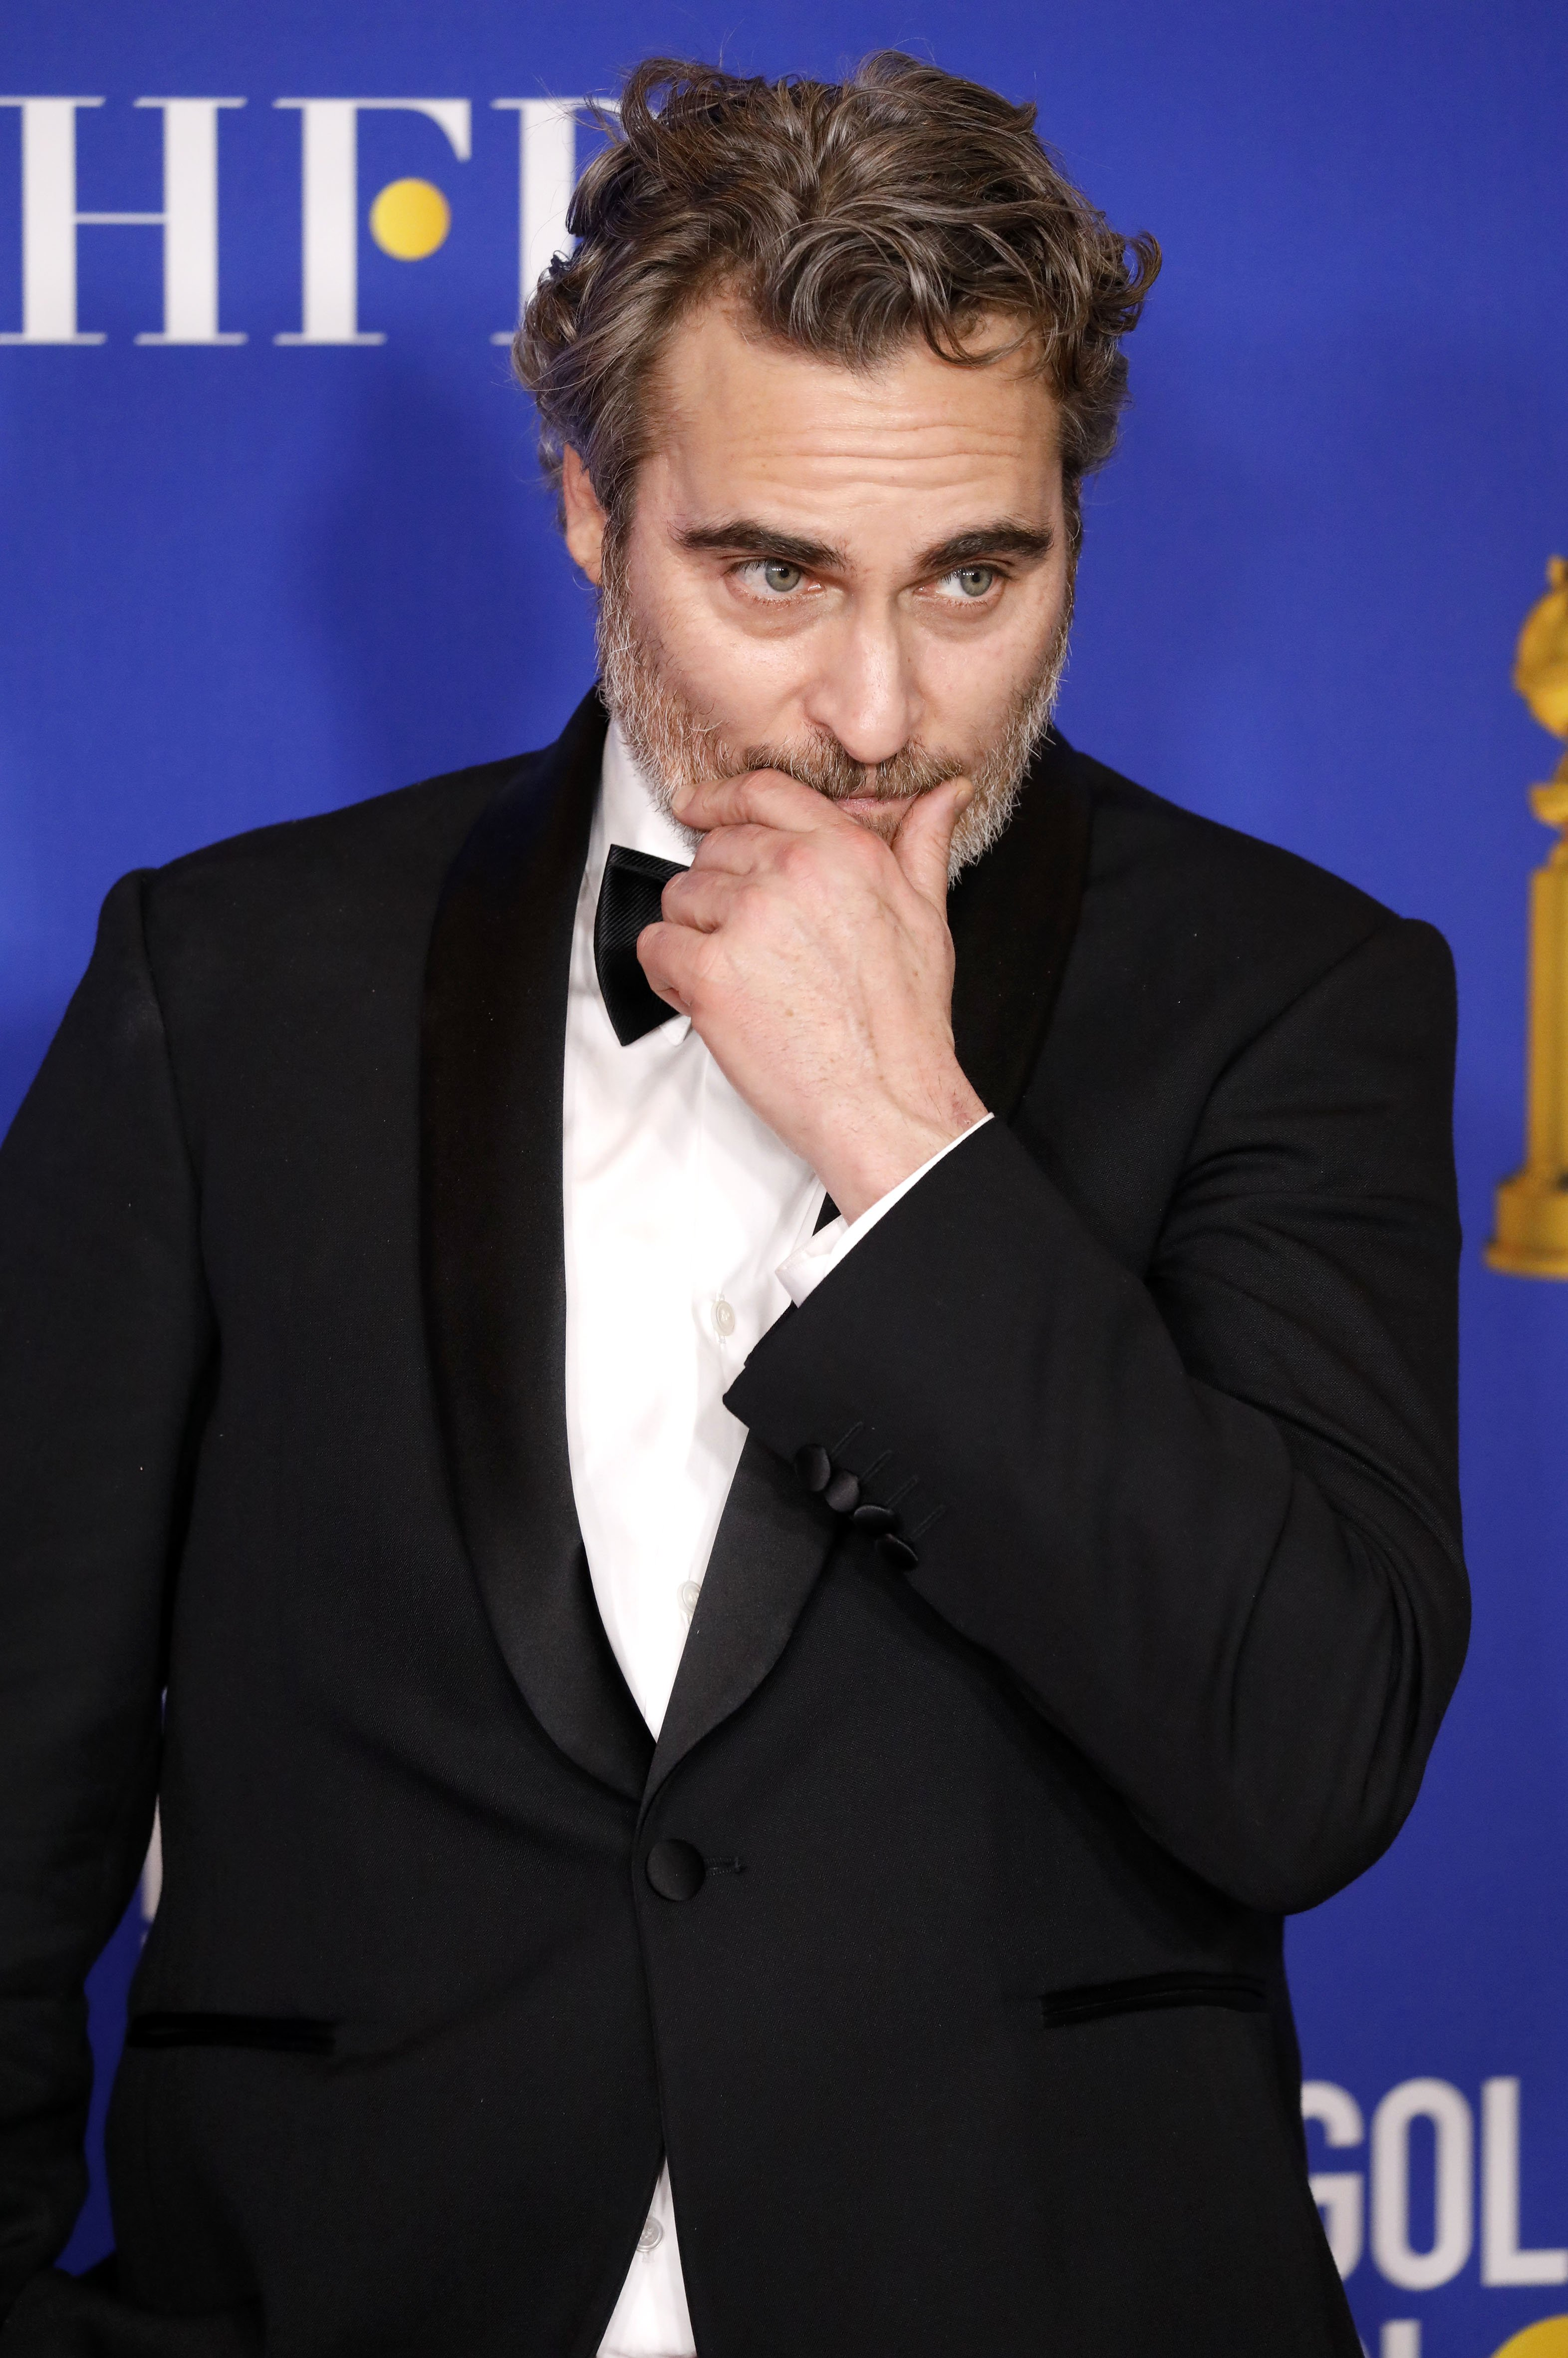 Joaquin Phoenix at the press room of the Golden Globe Awards in Beverly Hills, California on January 5, 2020 | Photo: Getty Images